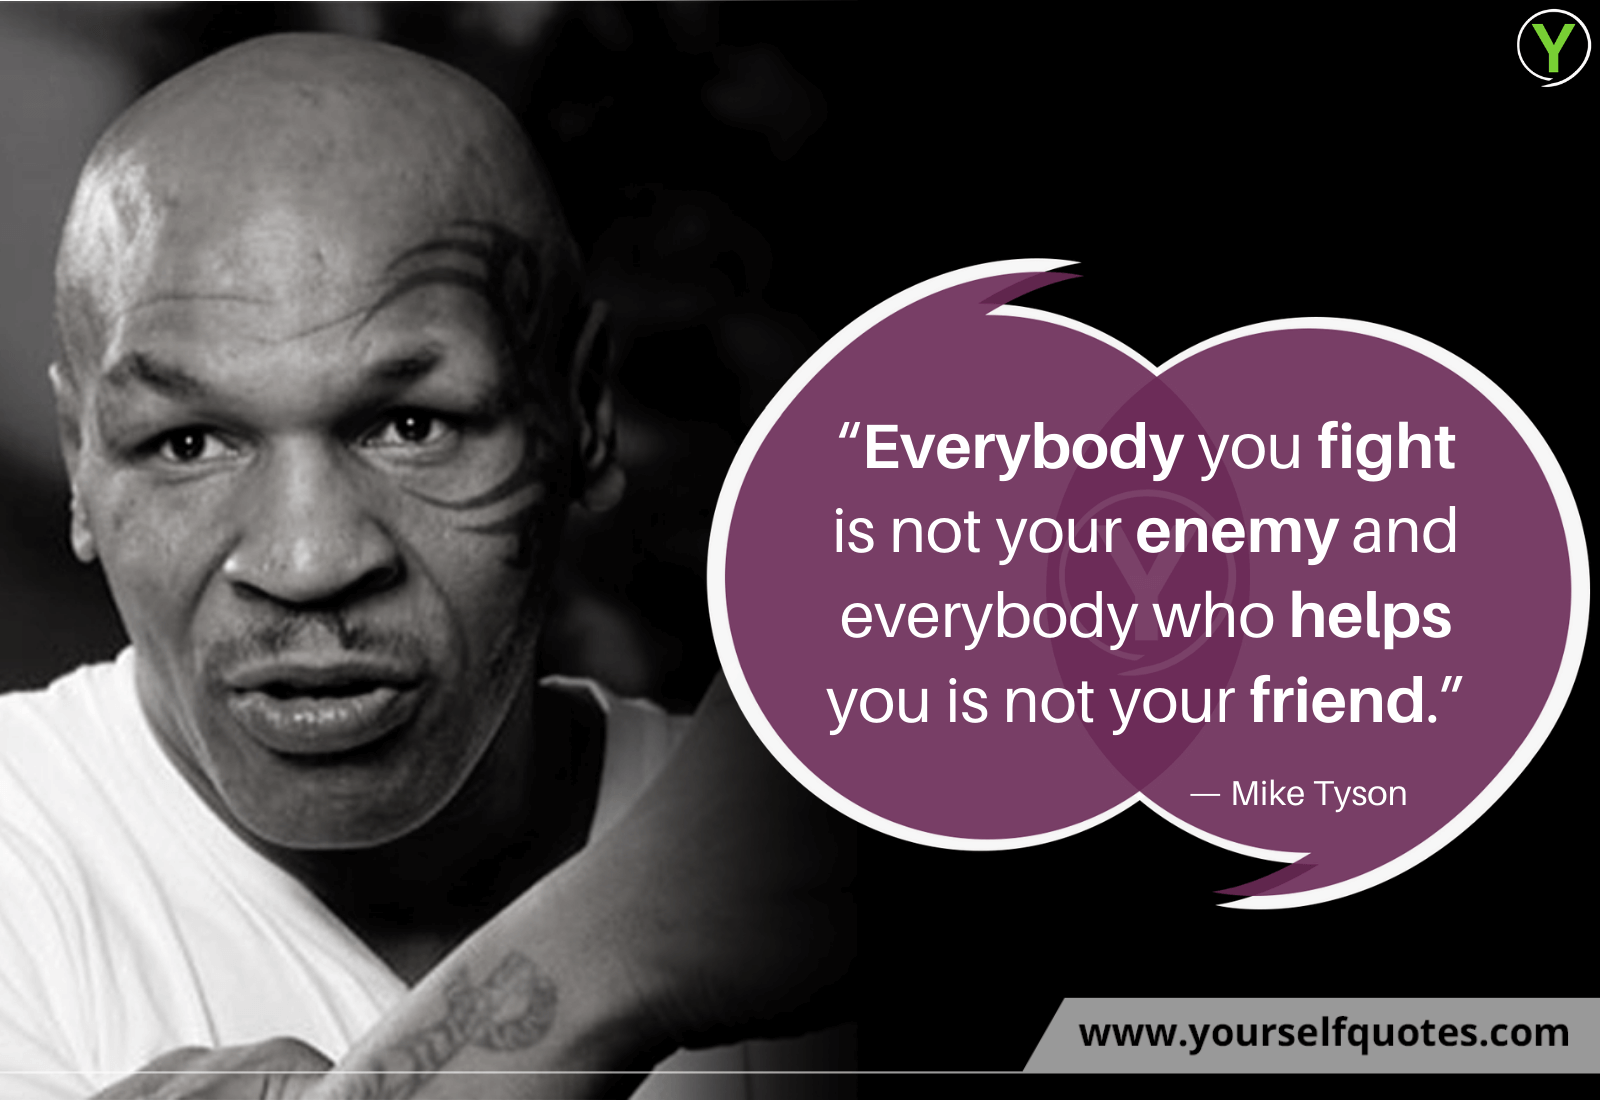 Motivational Mike Tyson Quotes Images